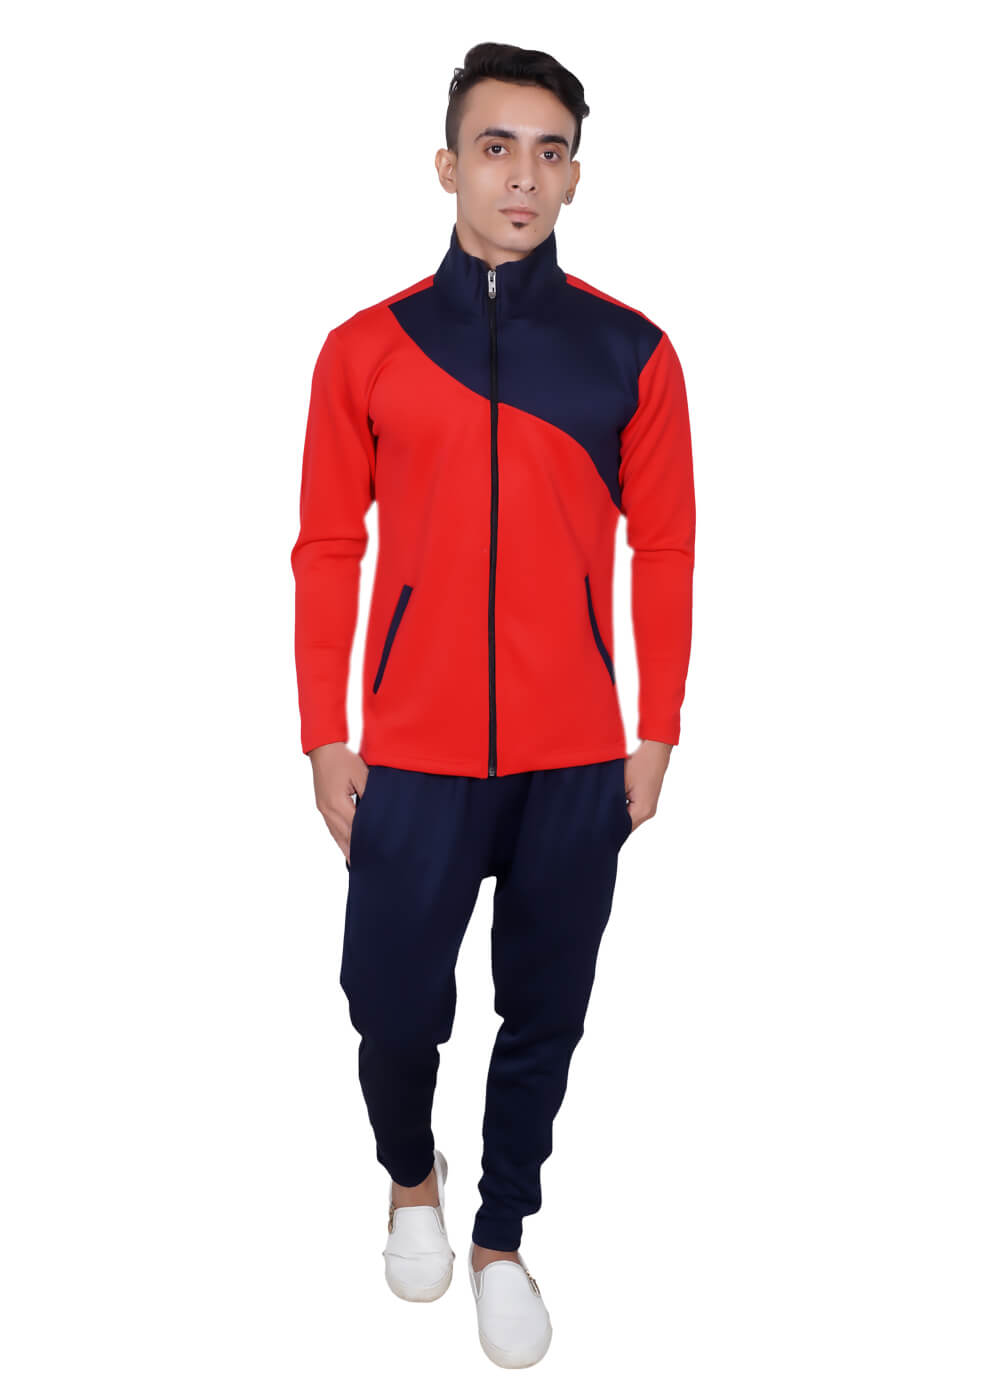 Cheap Tracksuits Manufacturers in Belgium